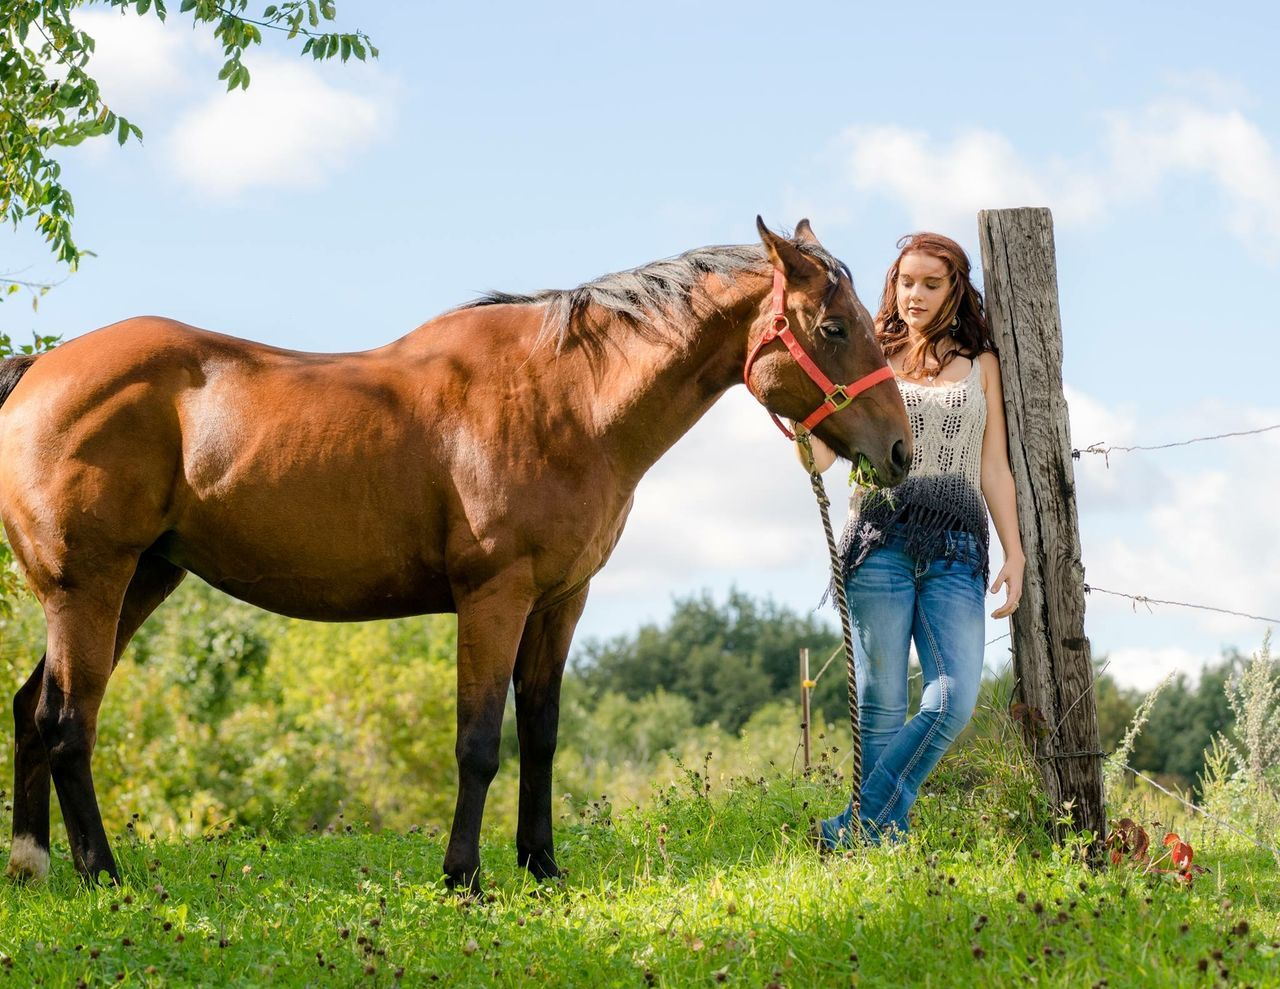 Young Woman Standing By Horse On Grassy Field Against Sky